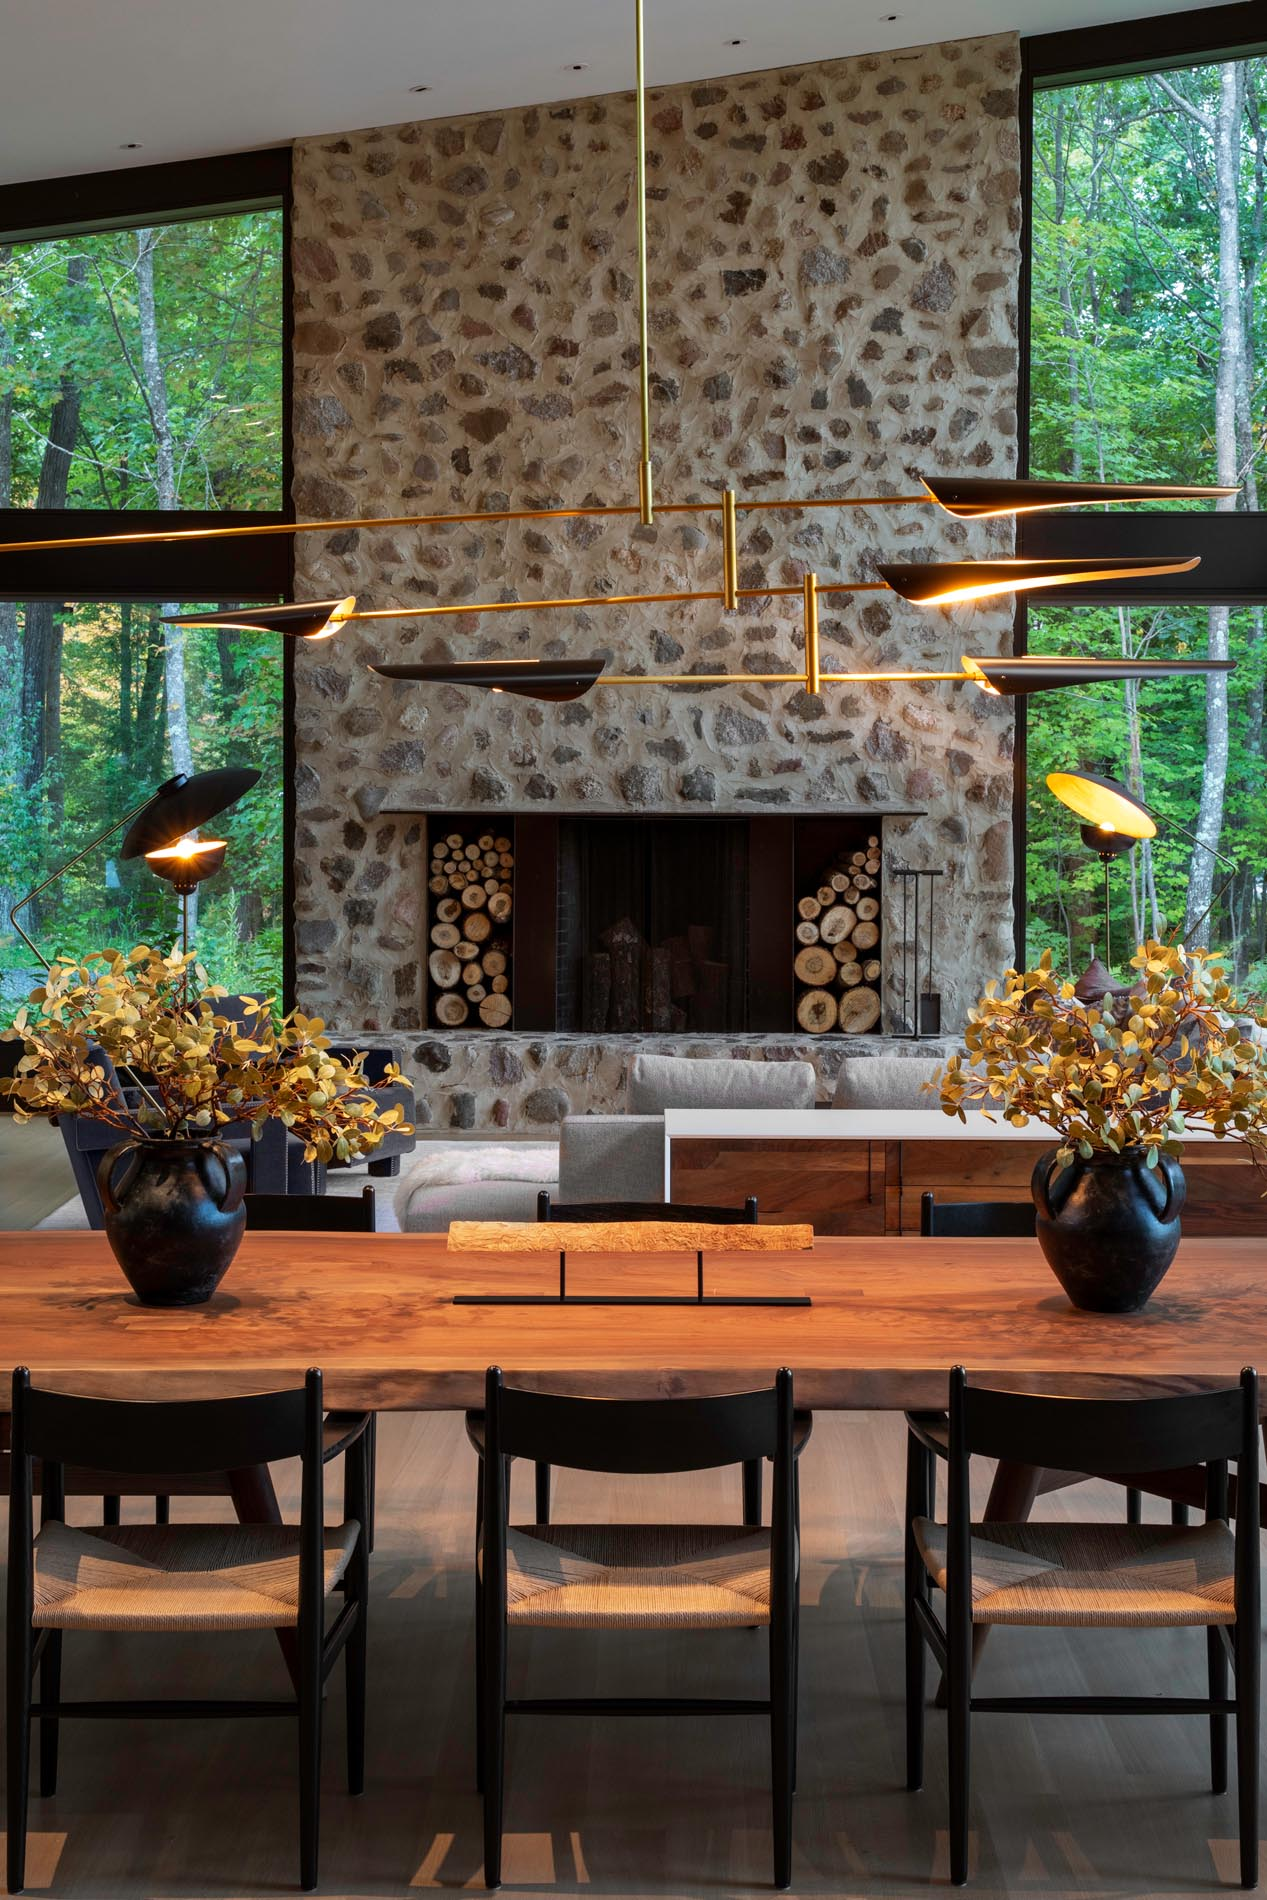 A custom wood dining table by Michael Dreeben and a sculptural David Weeks chandelier separate the living room from the kitchen. The dining area also provides a view of the fireplace that showcases hand-troweled masonry and field stone.